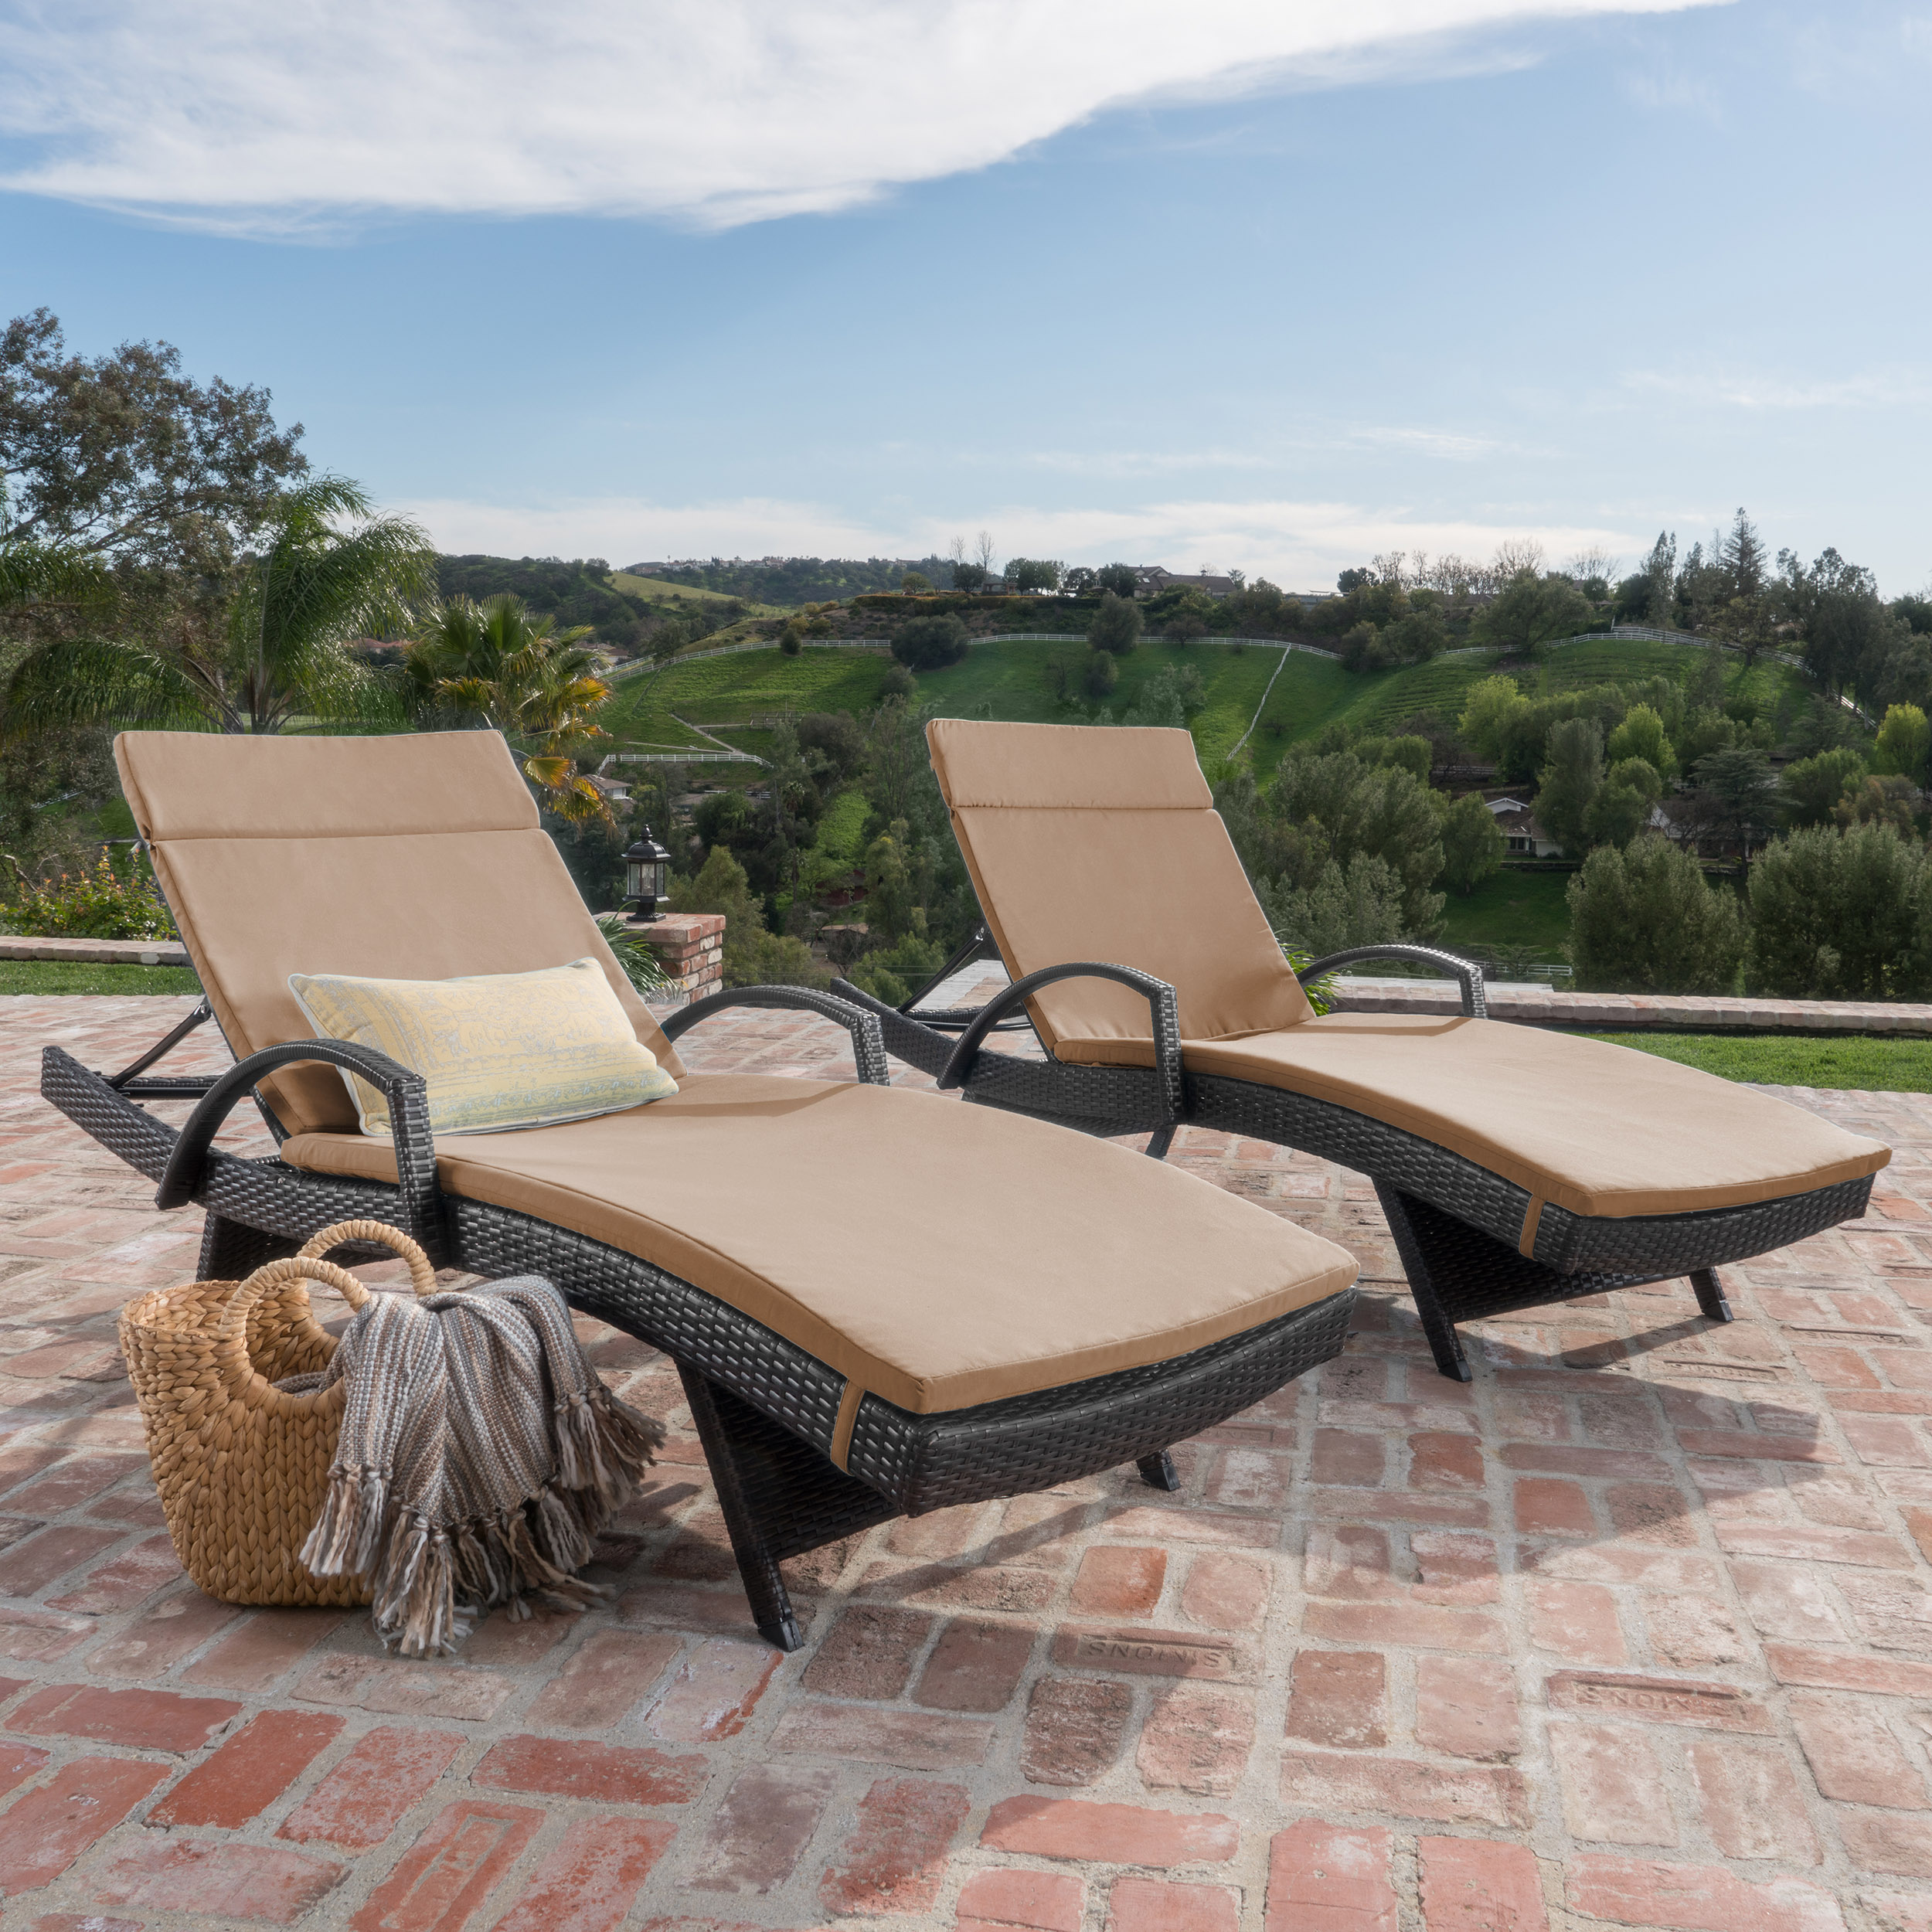 Anthony Outdoor Wicker Adjustable Chaise Lounge with Arms and Cushion, Set of 2, Multibrown, Carmel